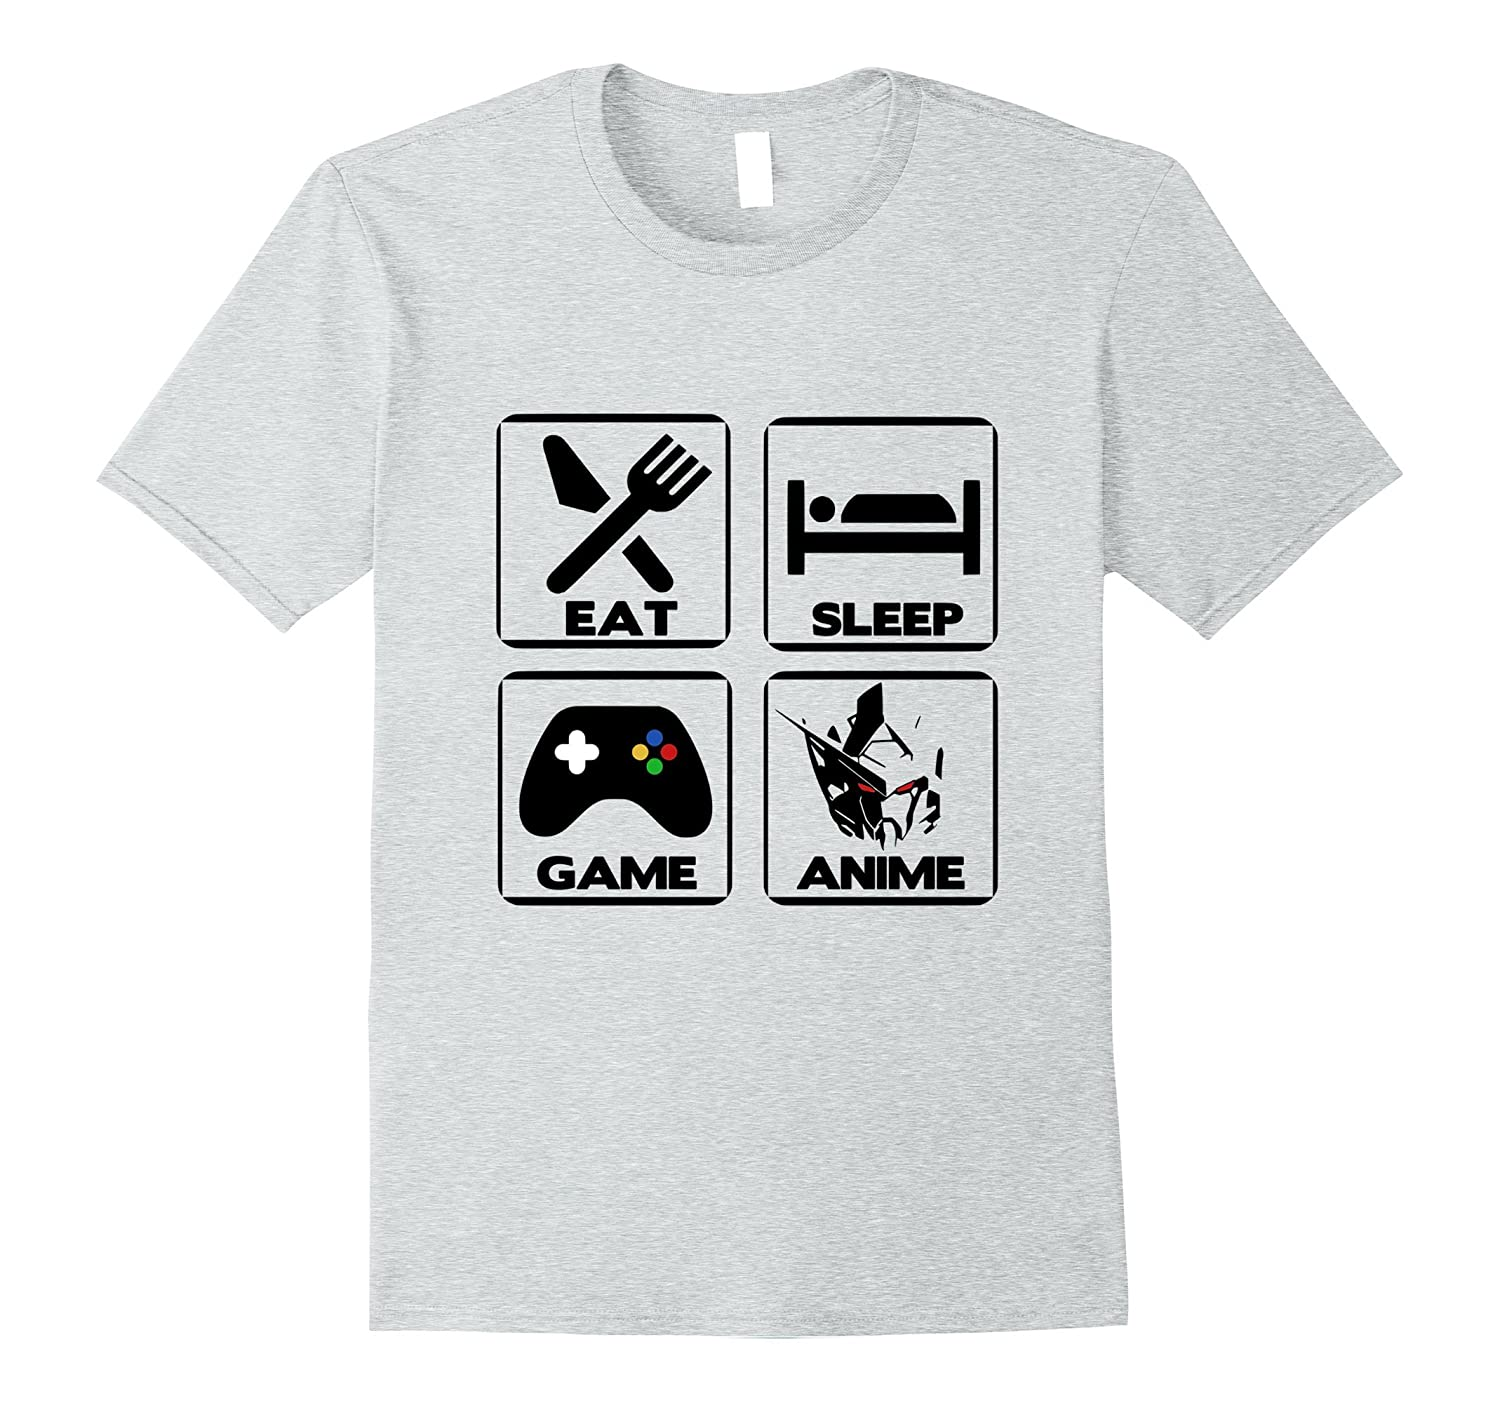 Anime & Gamer Shirt - Eat Sleep Game Anime T-Shirt-TH